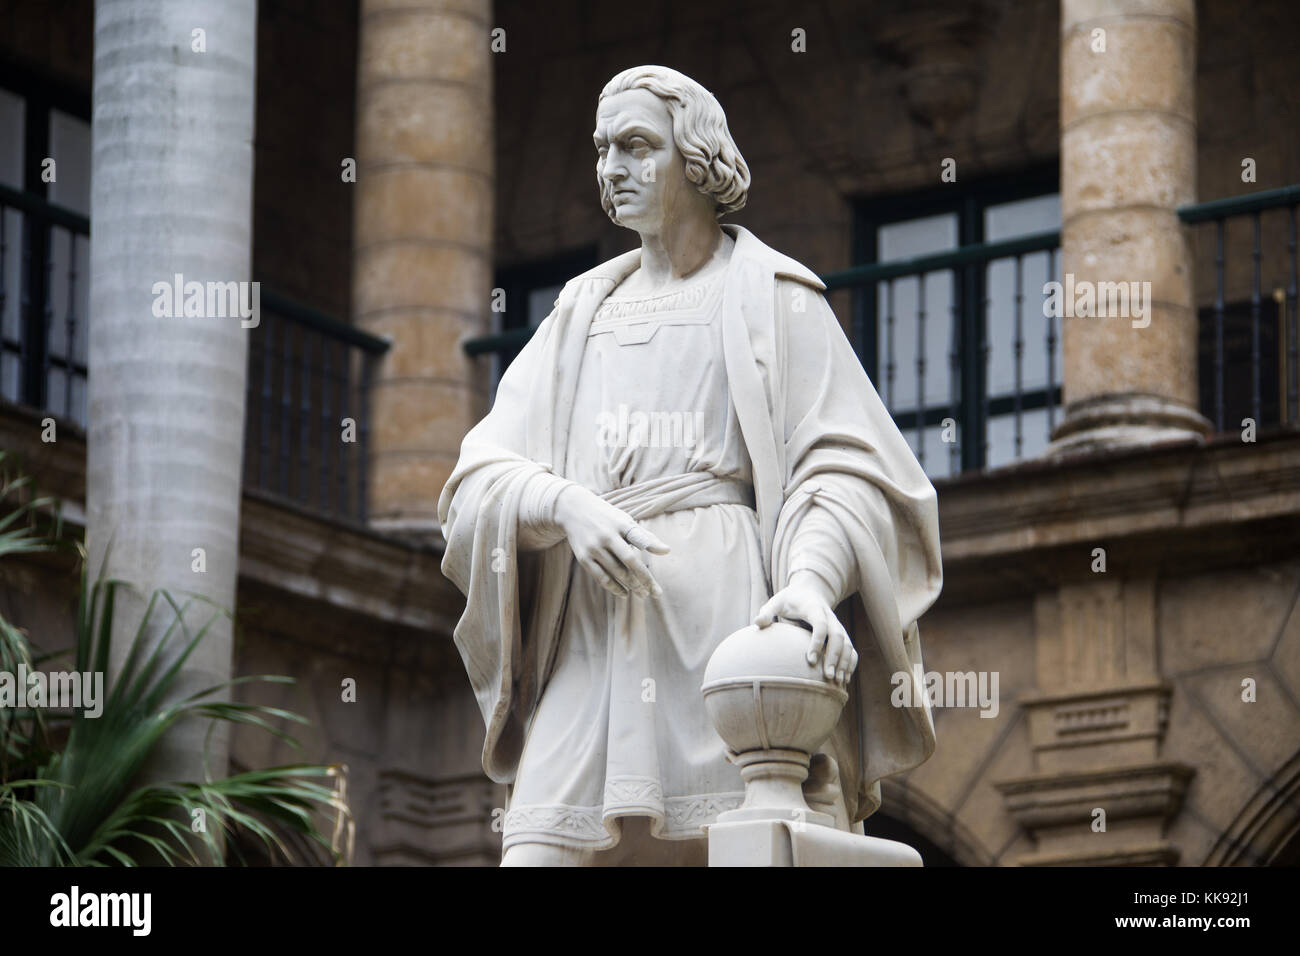 Statue of Christopher Columbus, Museum of the City Museo de la Ciudad, Havana, Cuba - Stock Image